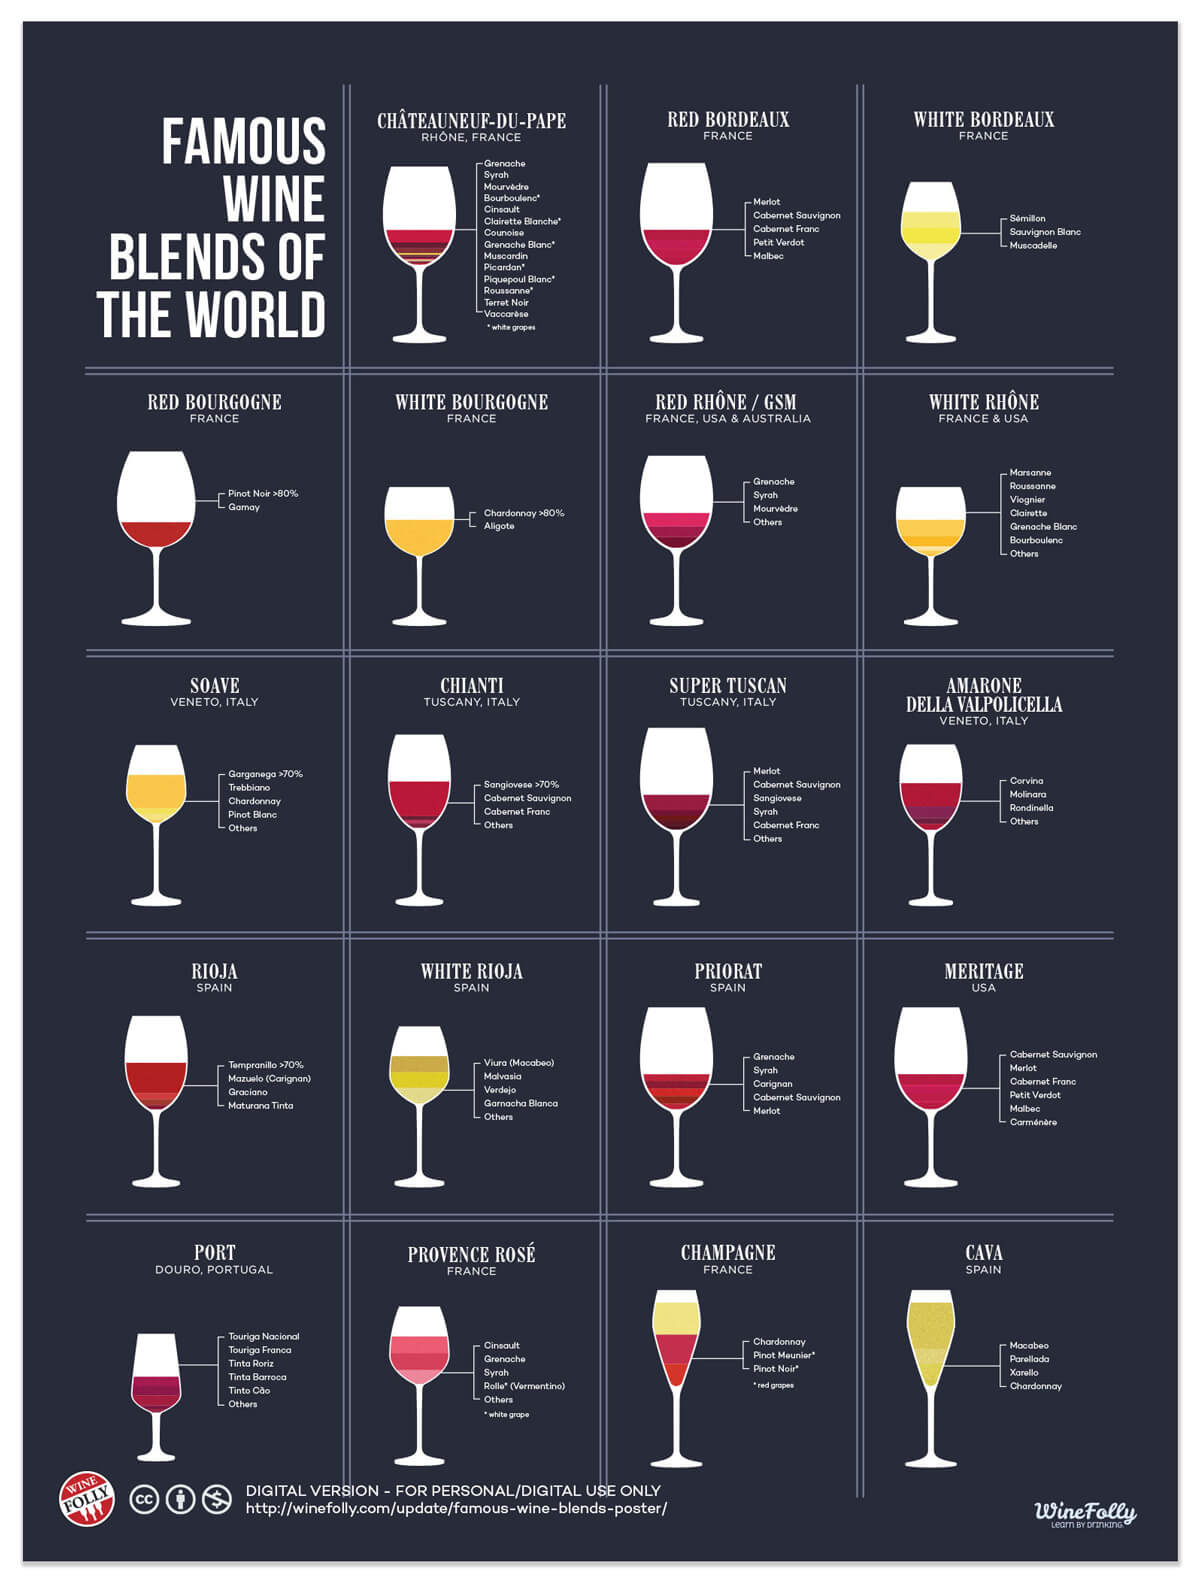 Famous Wine Blends - Poster Print - Infographic by Wine Folly